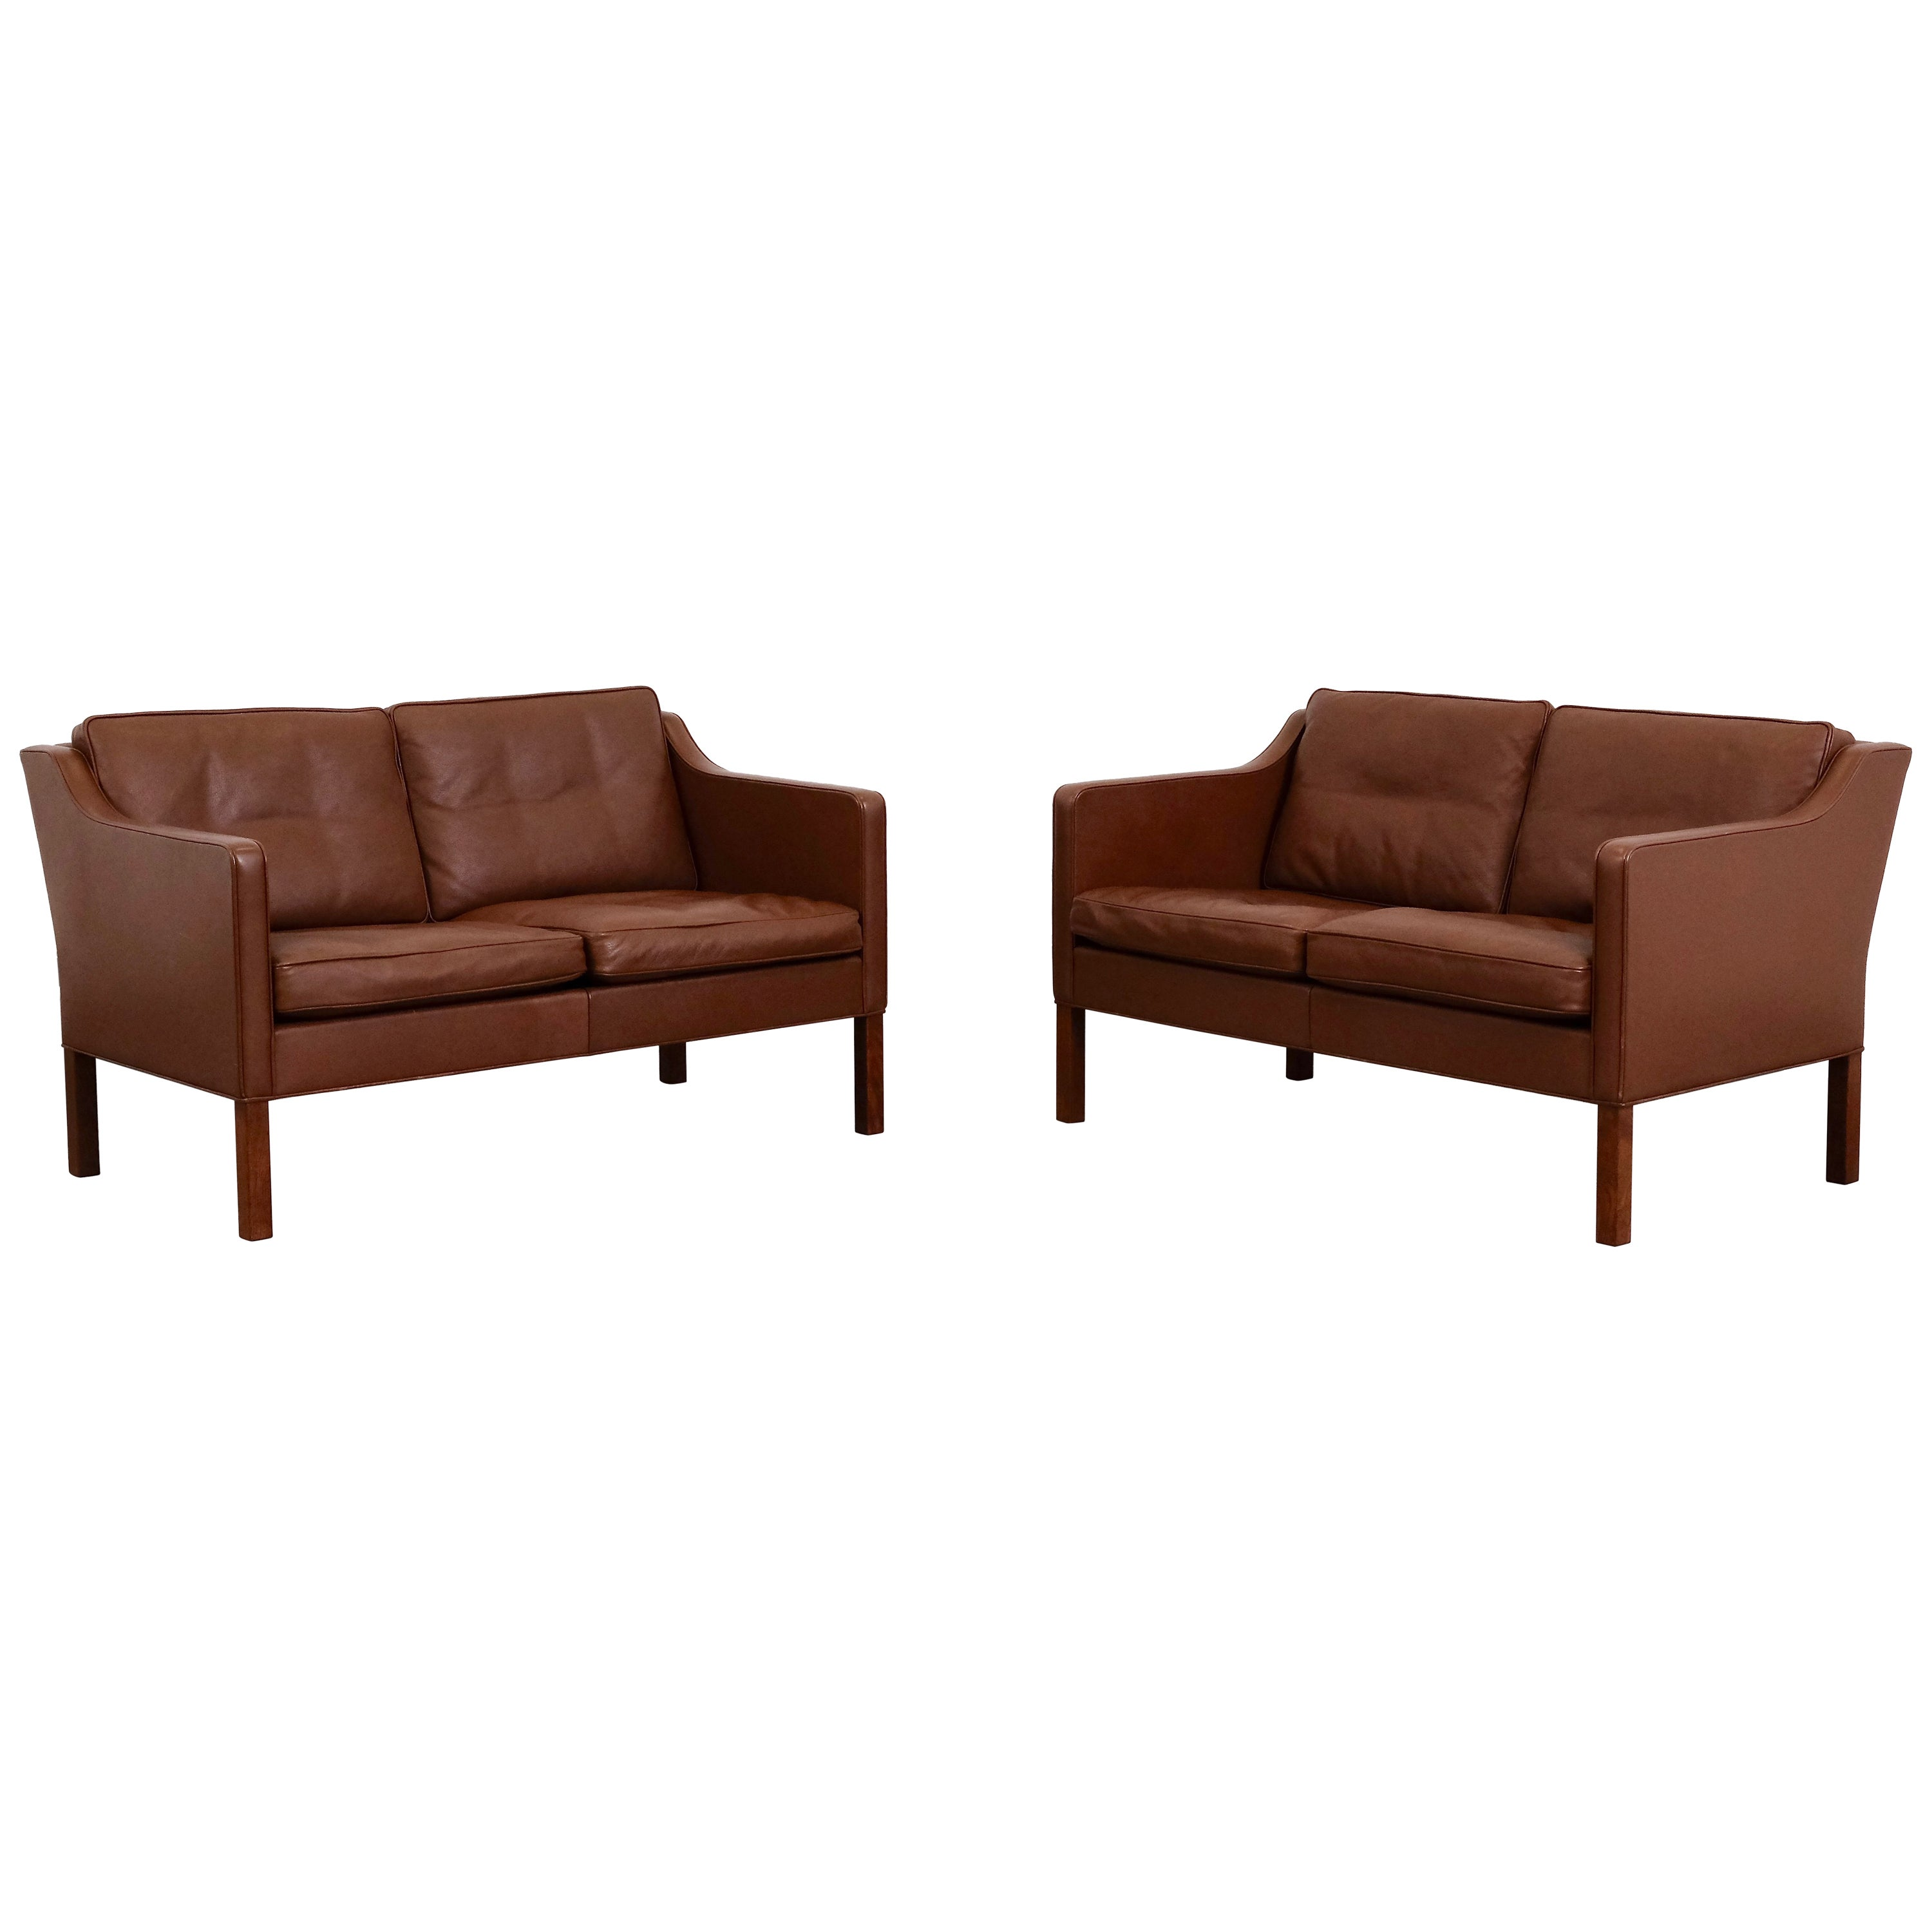 Brown Sofa And Loveseat Sets Børge Mogensen Model 2422 Fredericia Brown Leather Sofa Or Loveseat Set Of Two